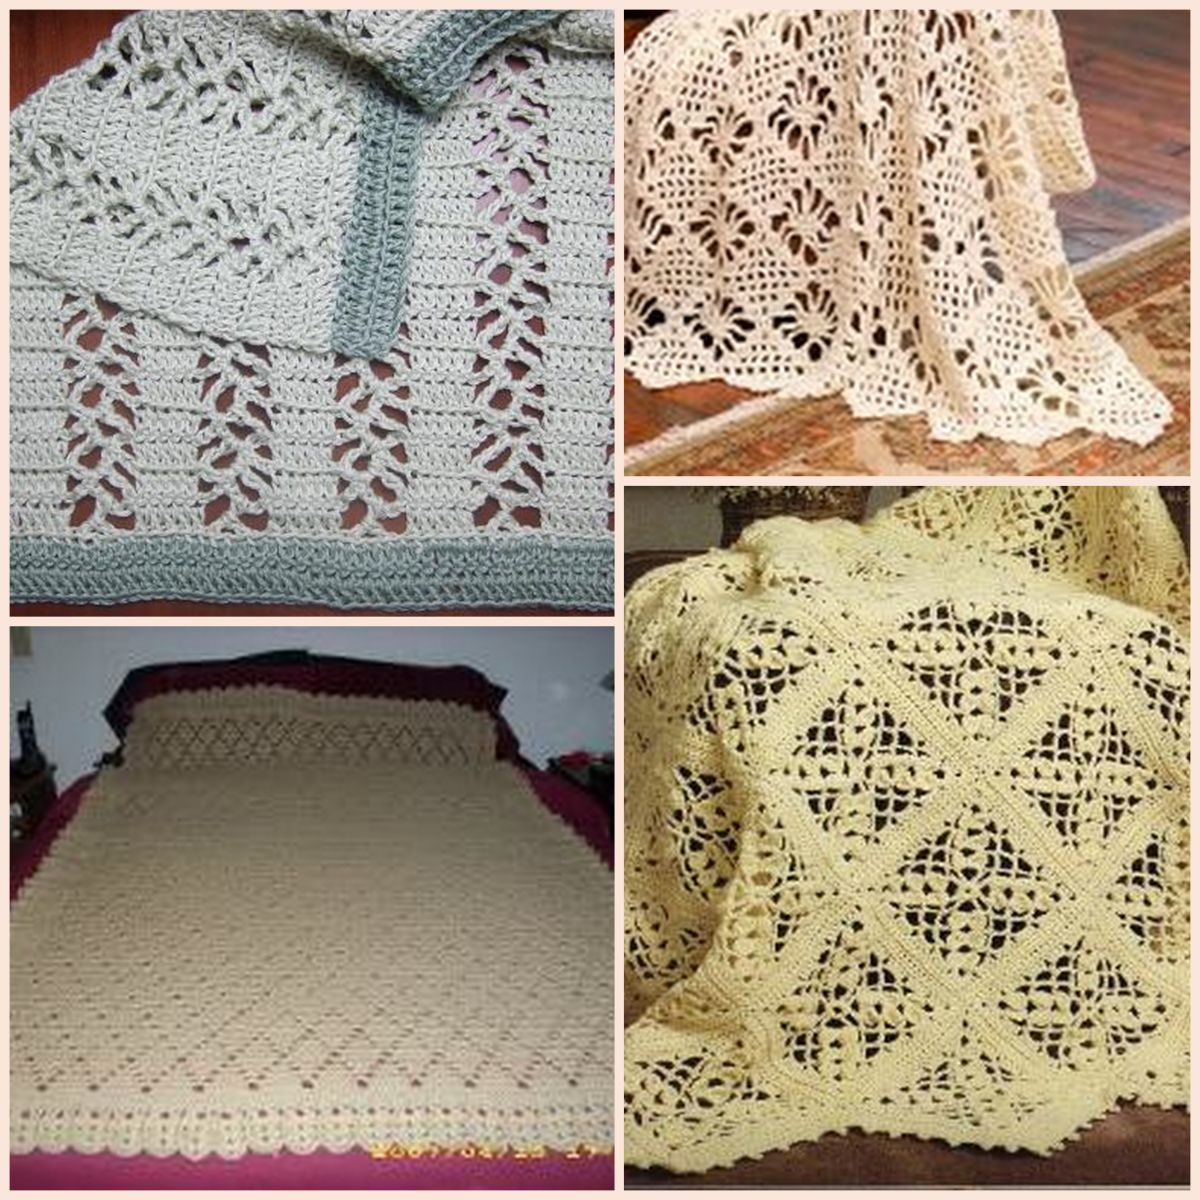 All Crochet Free Patterns : Free Crochet Patterns Crochet Something For All Levels 2016 Car ...